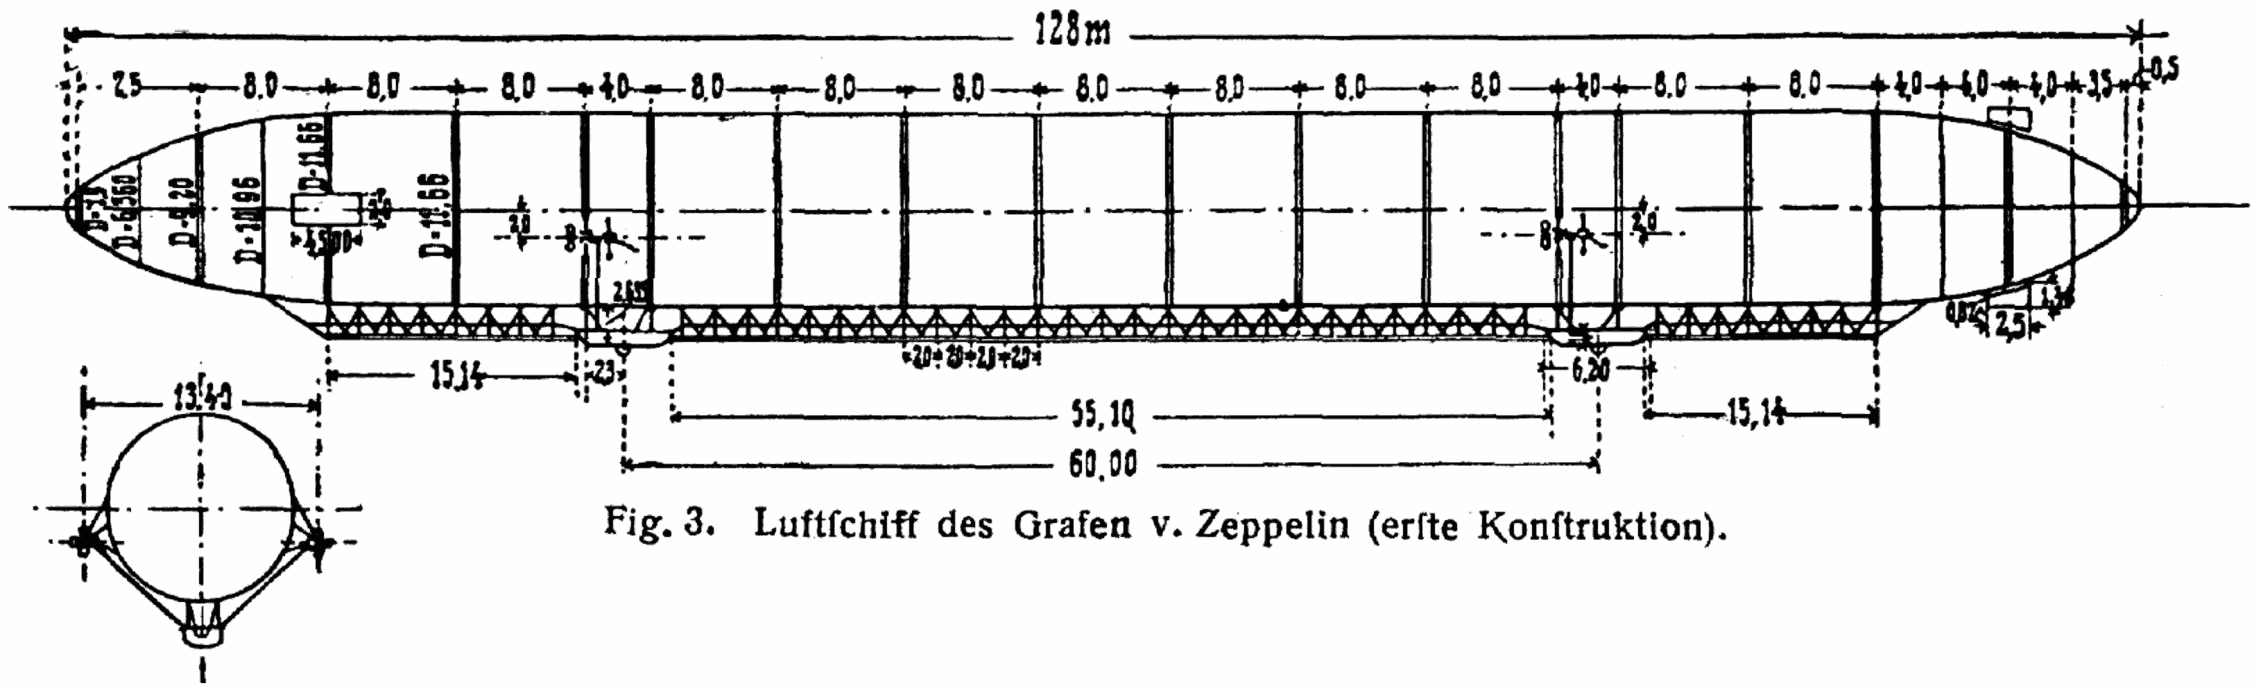 This plan of LZ 1 comes from the Lexikon der gesamten Technik (dictionary of technology) from 1904 by Otto Lueger